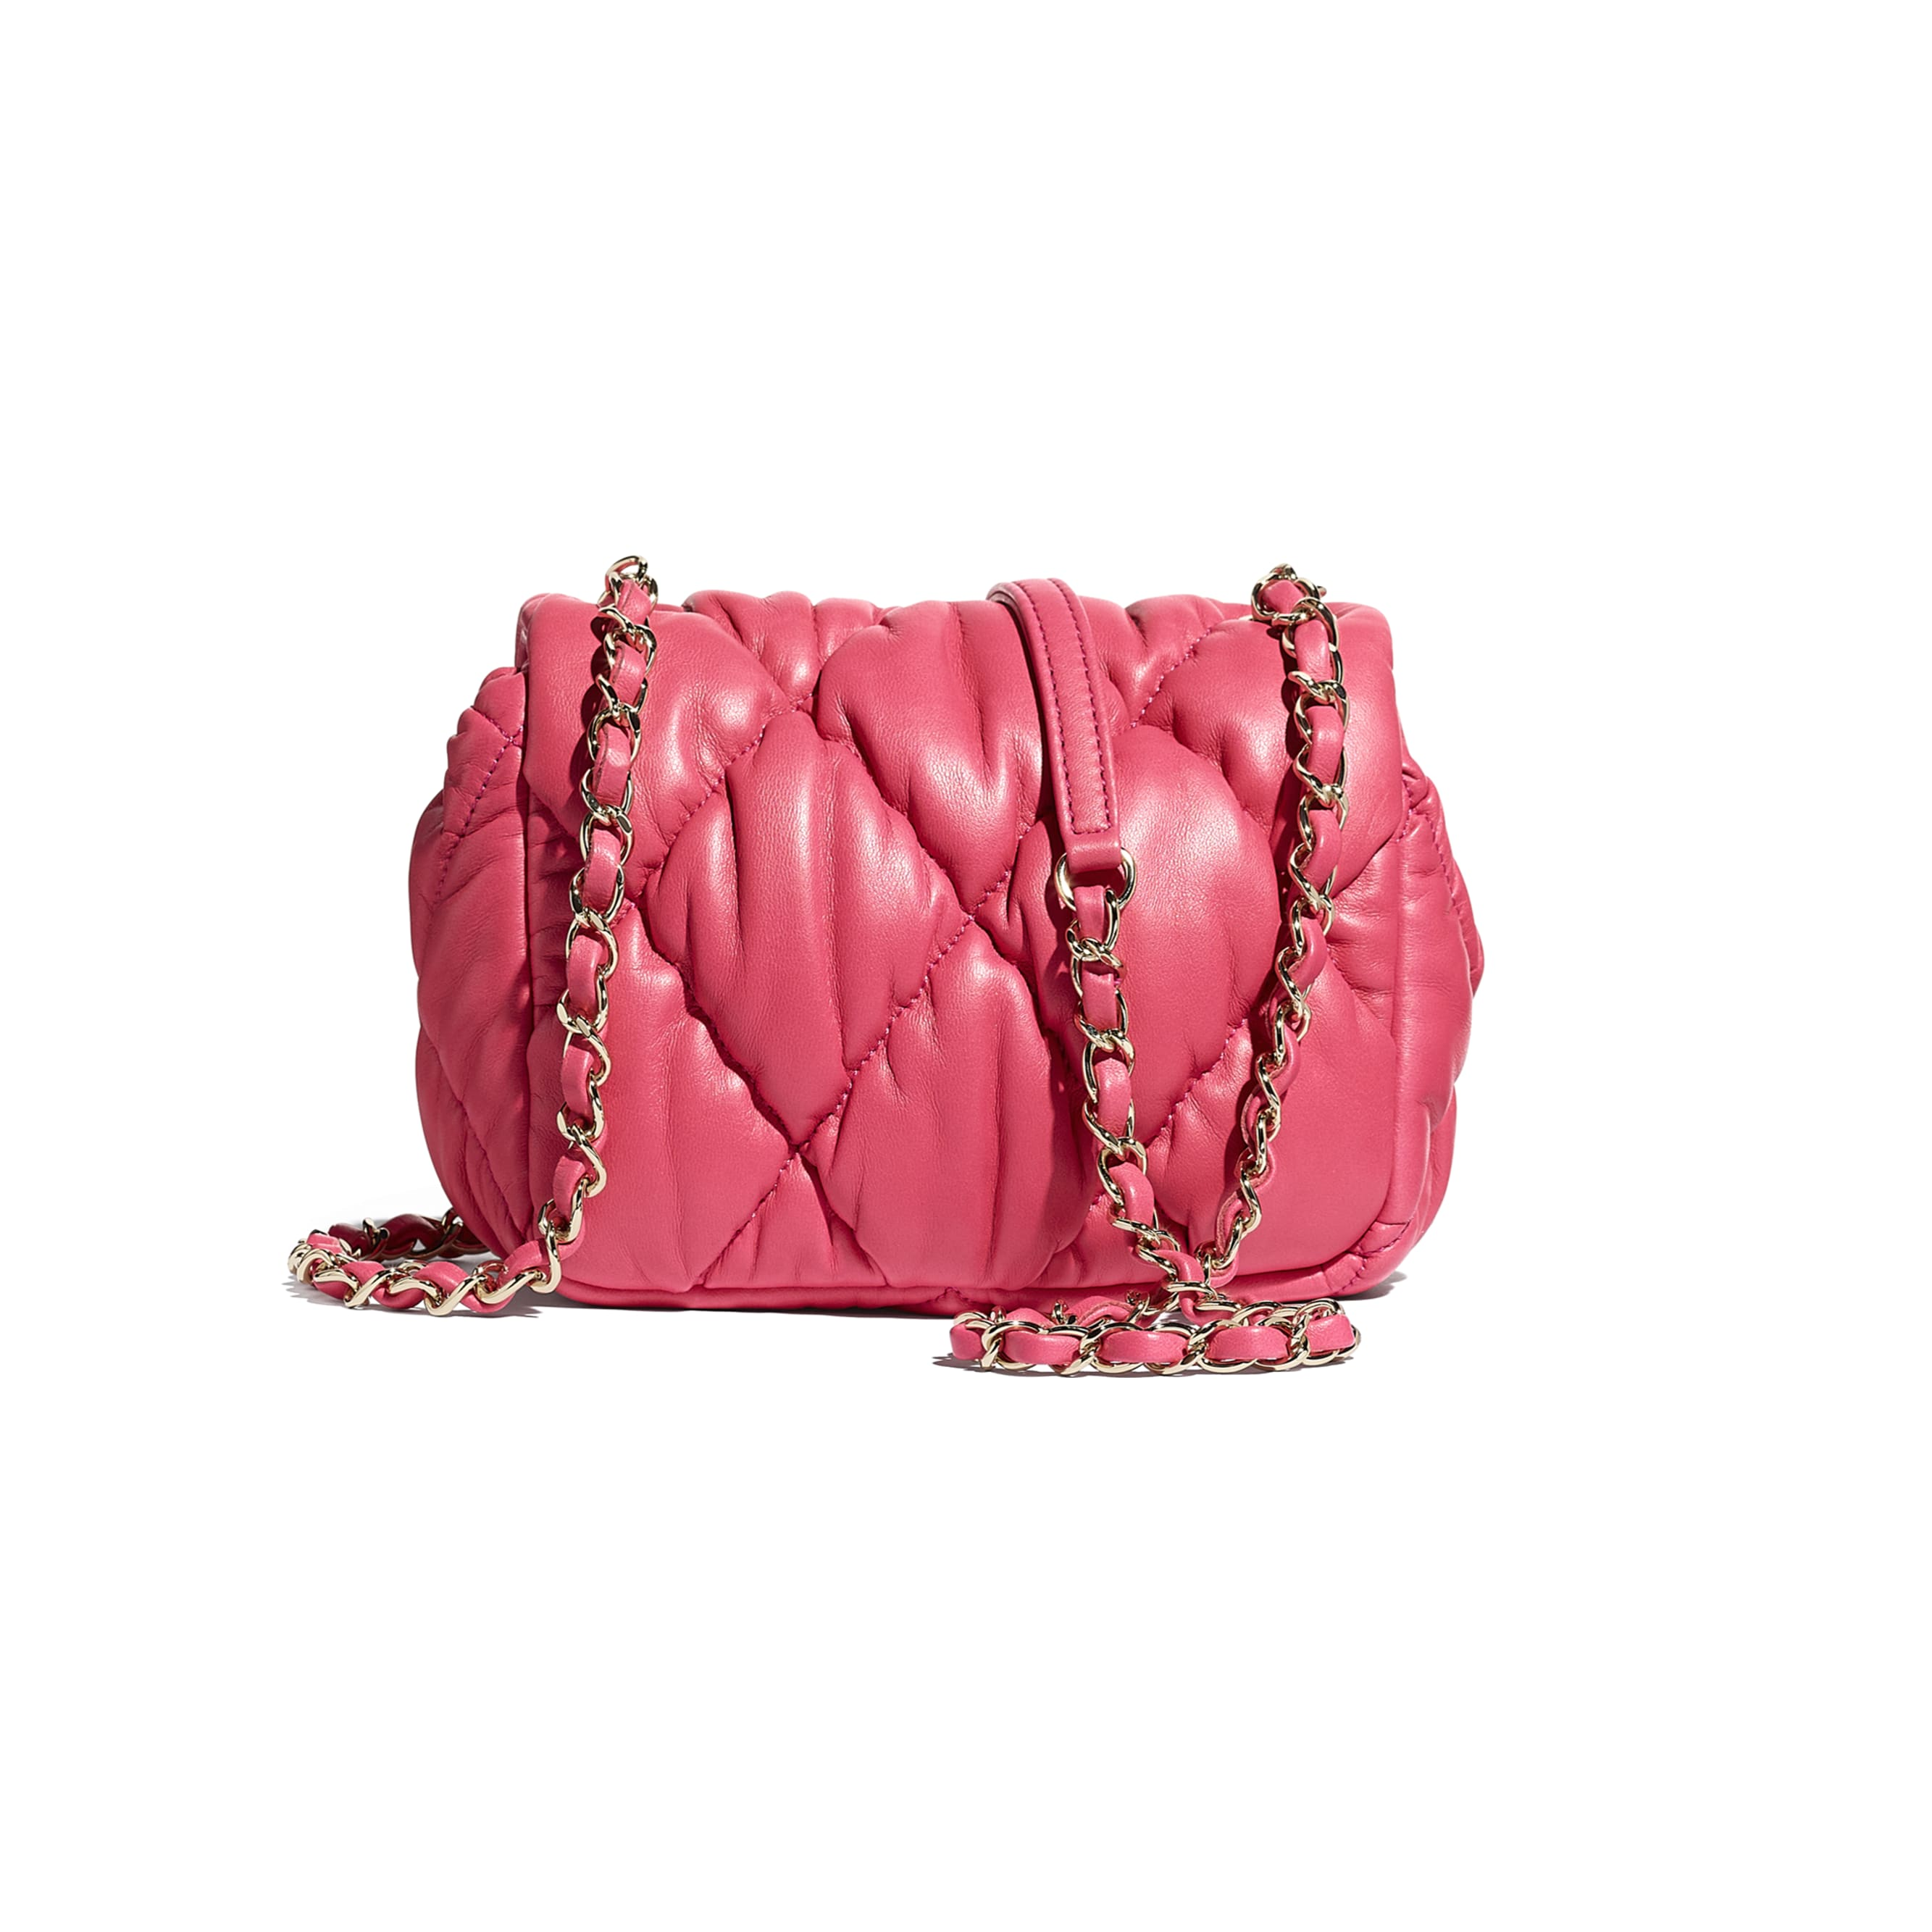 Small Flap Bag - Pink - Calfskin & Gold-Tone Metal - CHANEL - Alternative view - see standard sized version